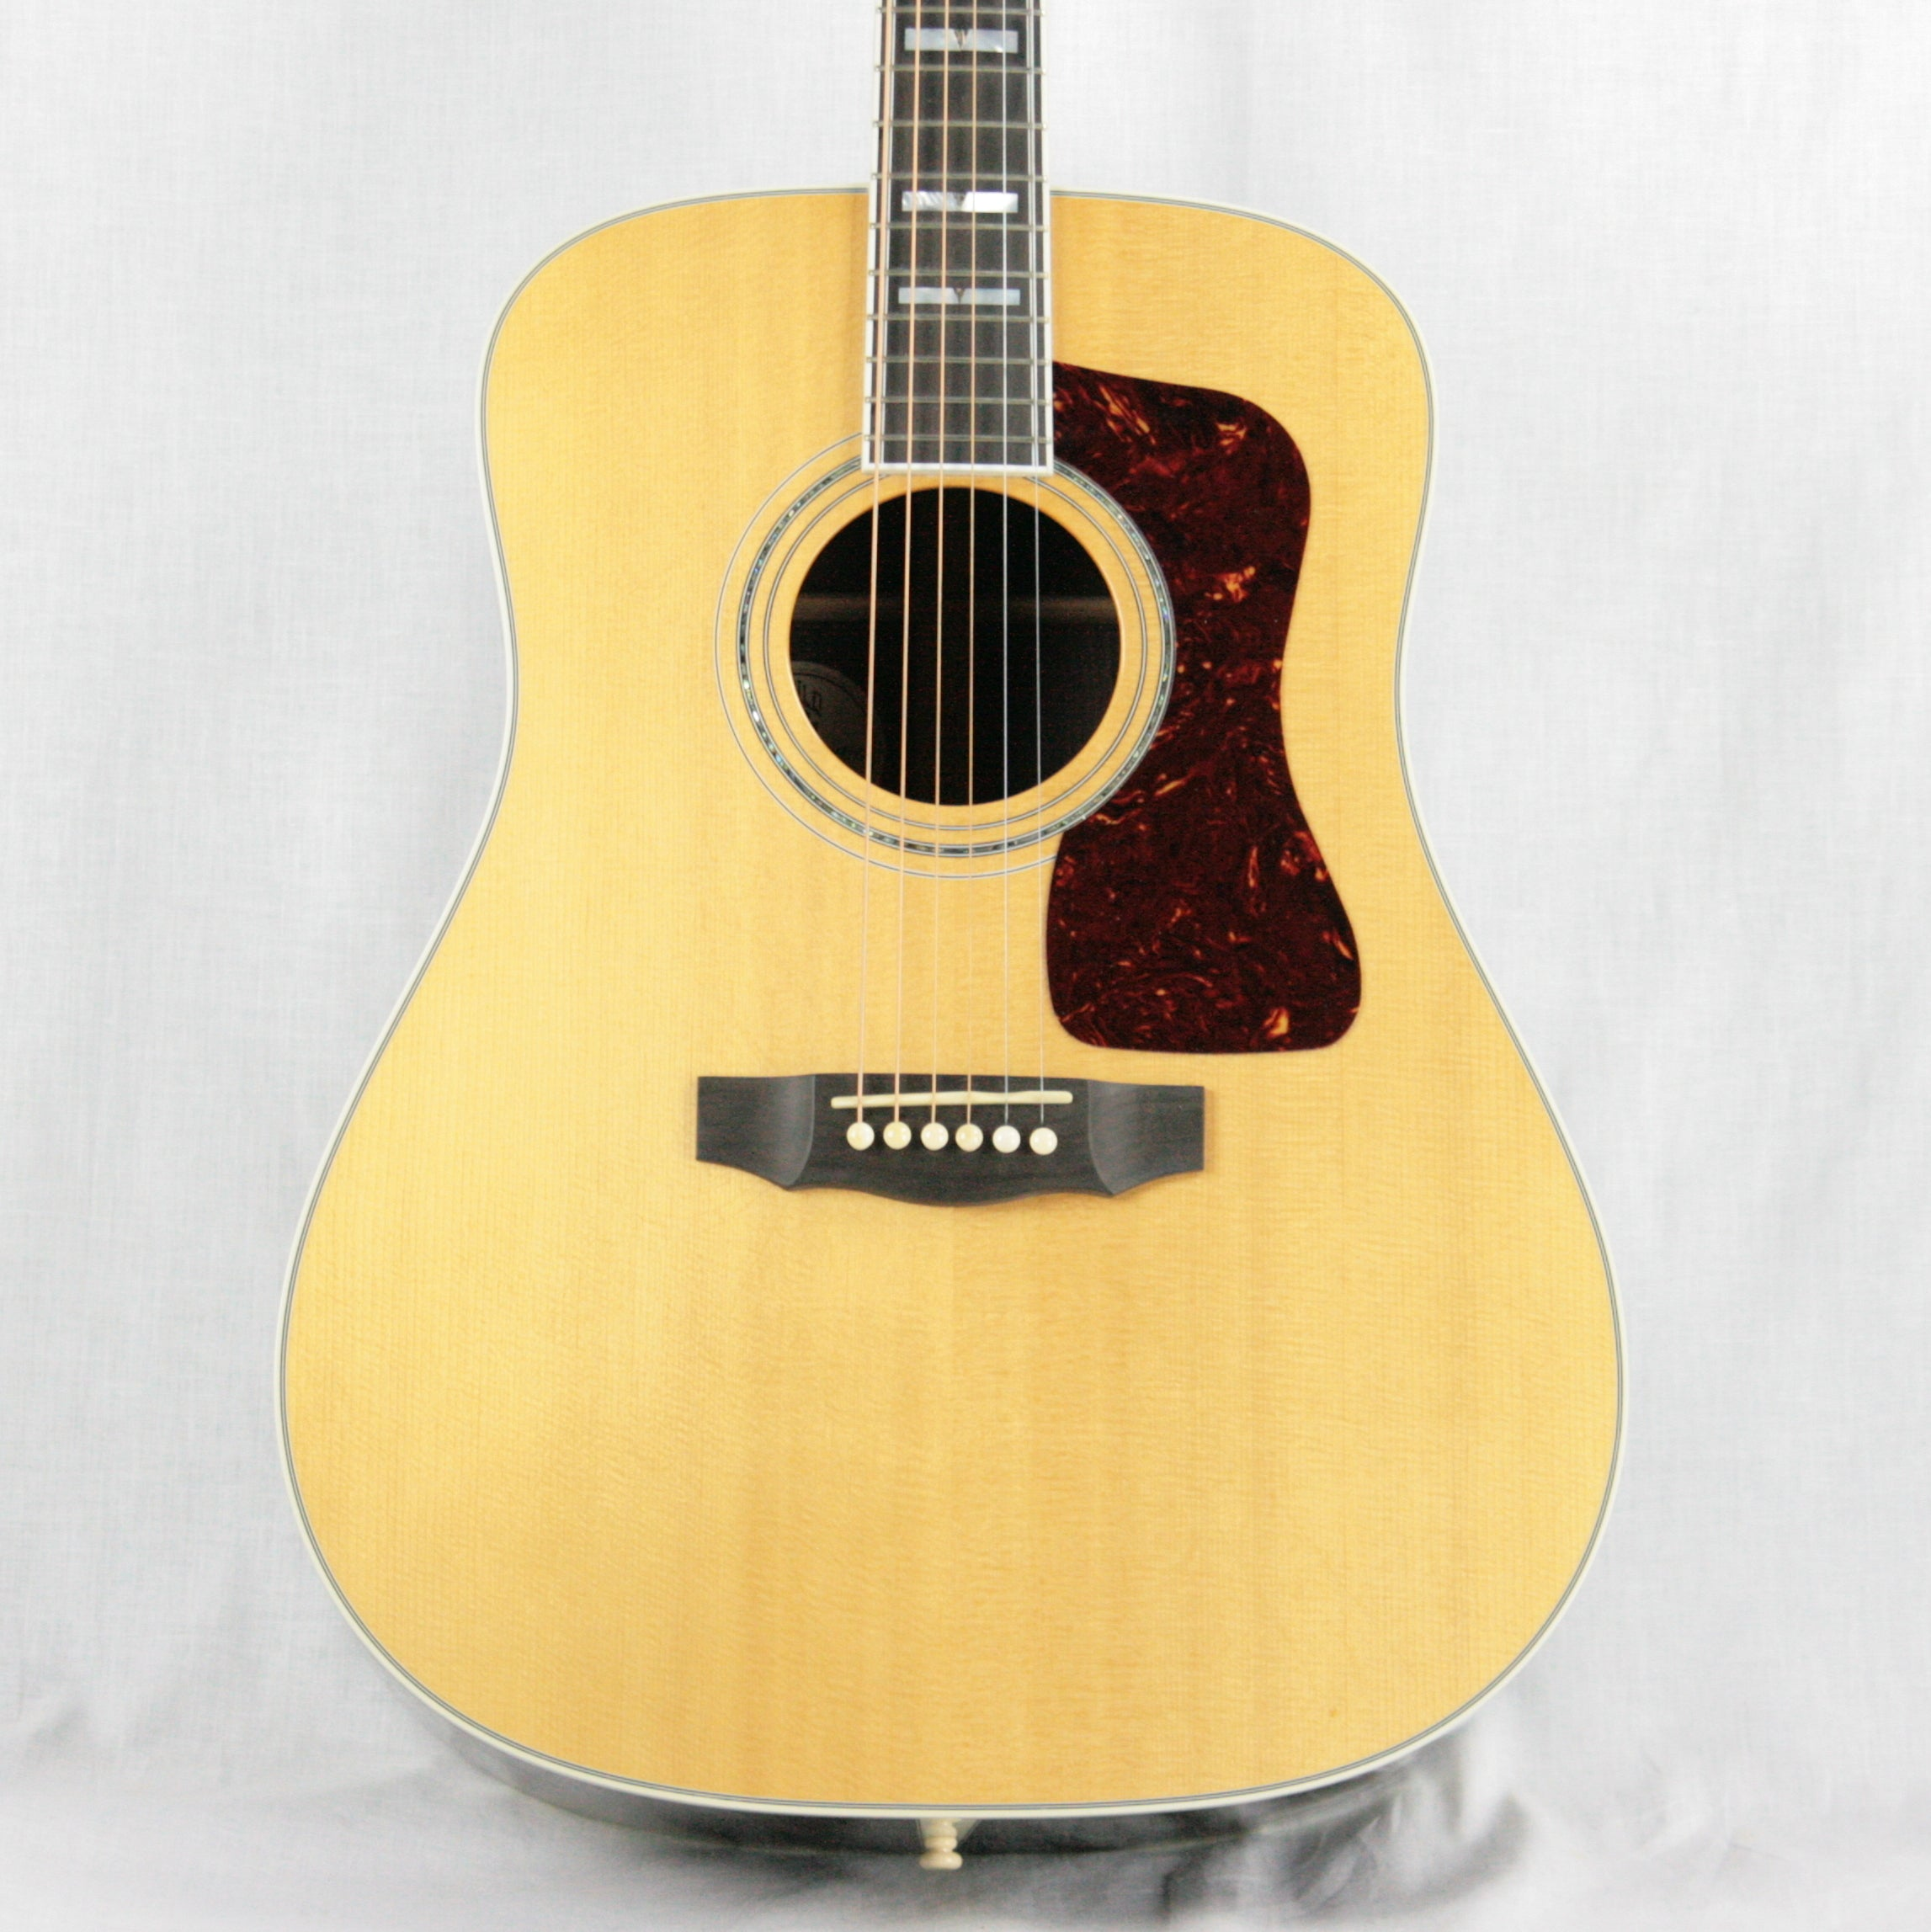 2010 Guild D-55 Natural Acoustic Dreadnought Guitar! New Hartford USA Made! d50 f50